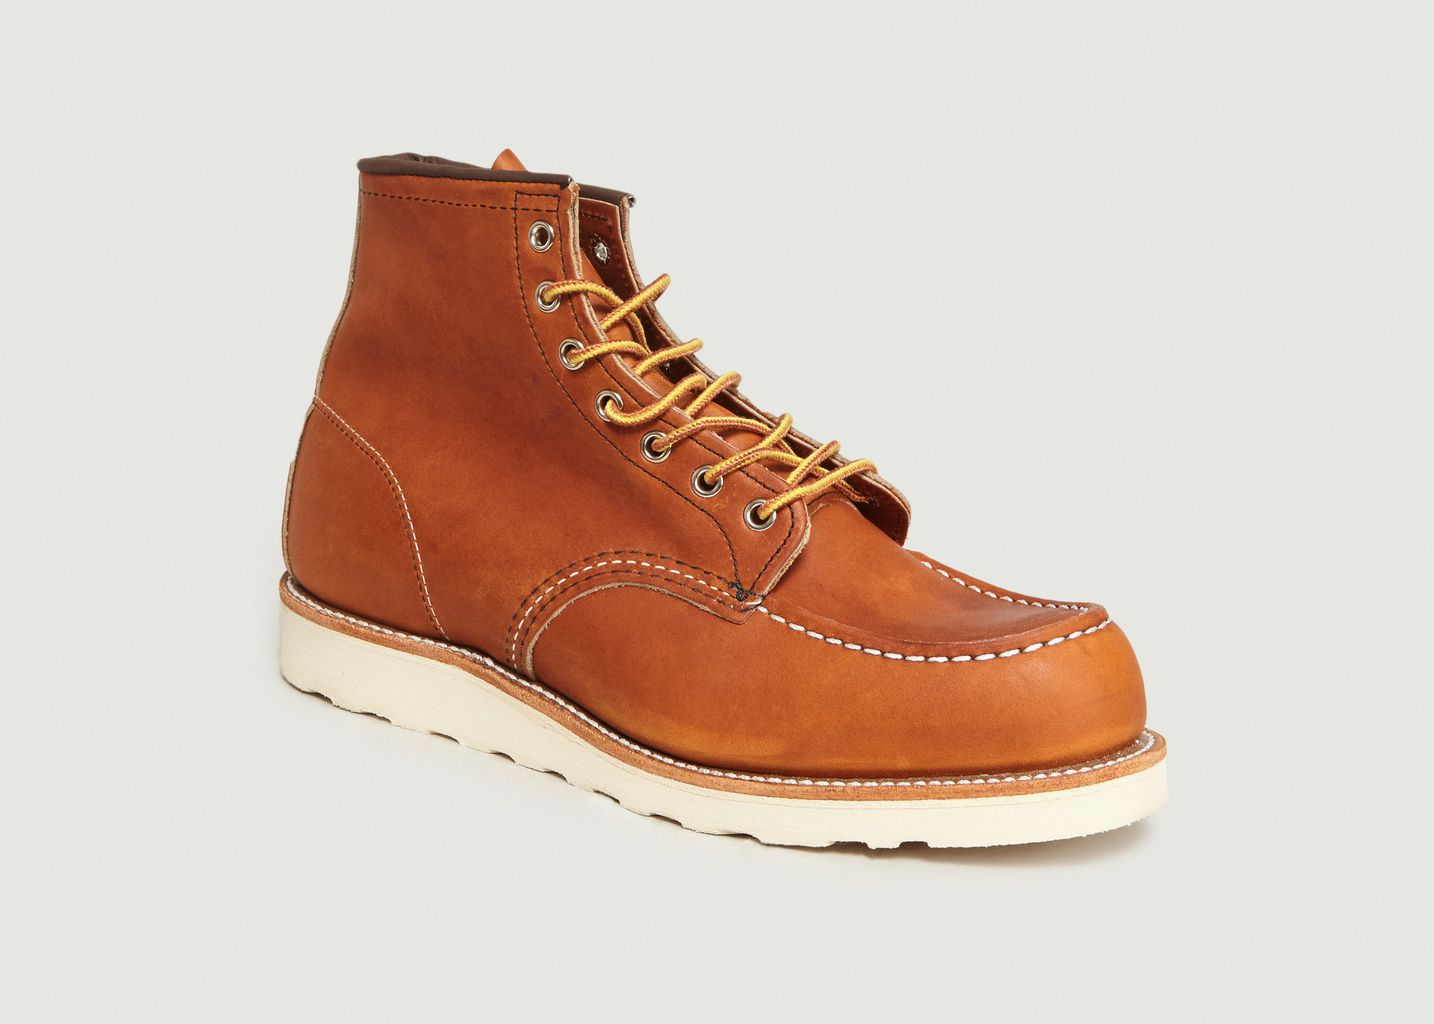 sold worldwide many styles best online 875 Leather Boots